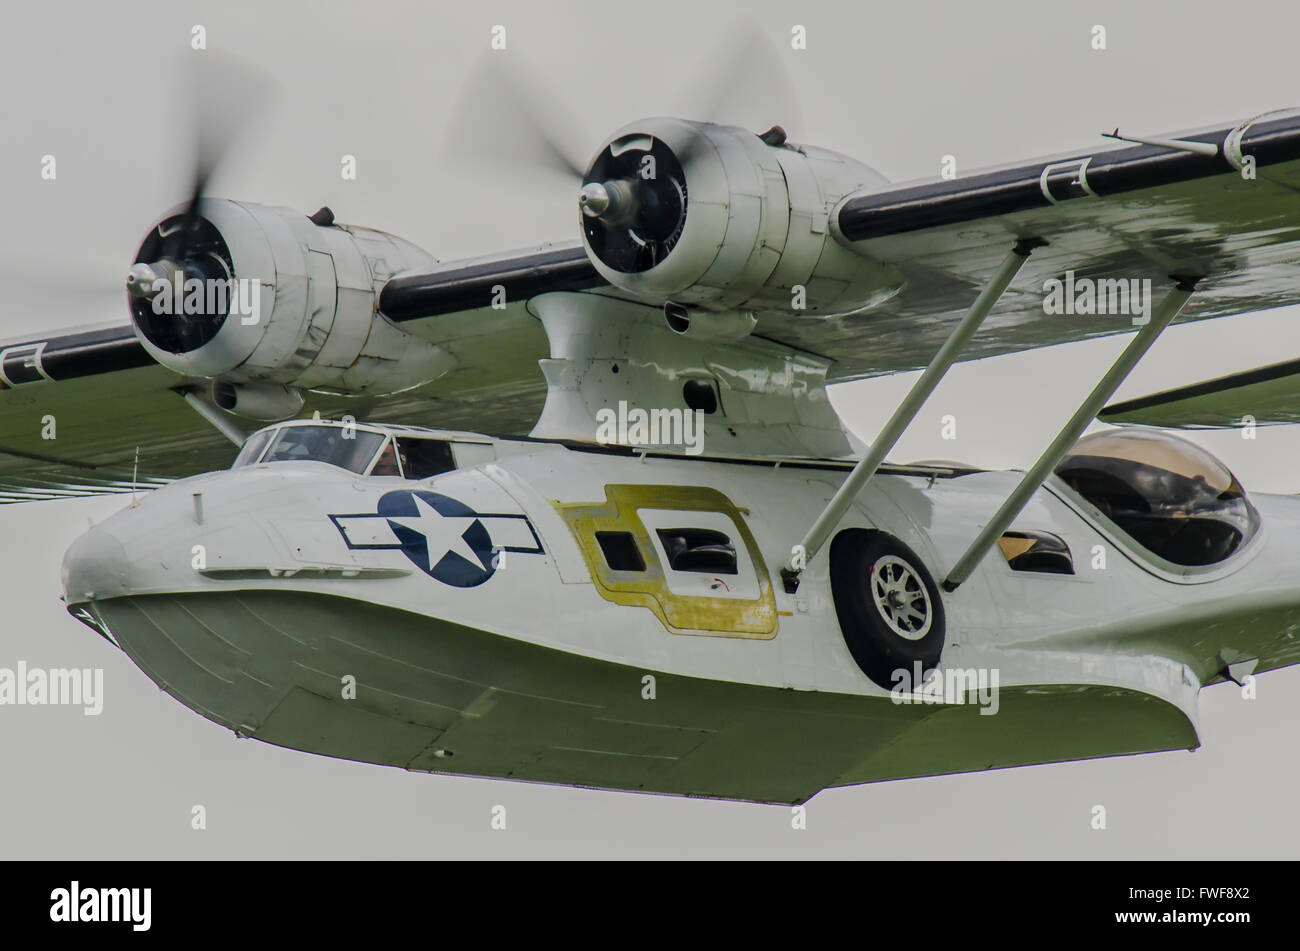 The Consolidated PBY Catalina was an American flying boat, and later an amphibious aircraft of the 1930s and 1940s. - Stock Image